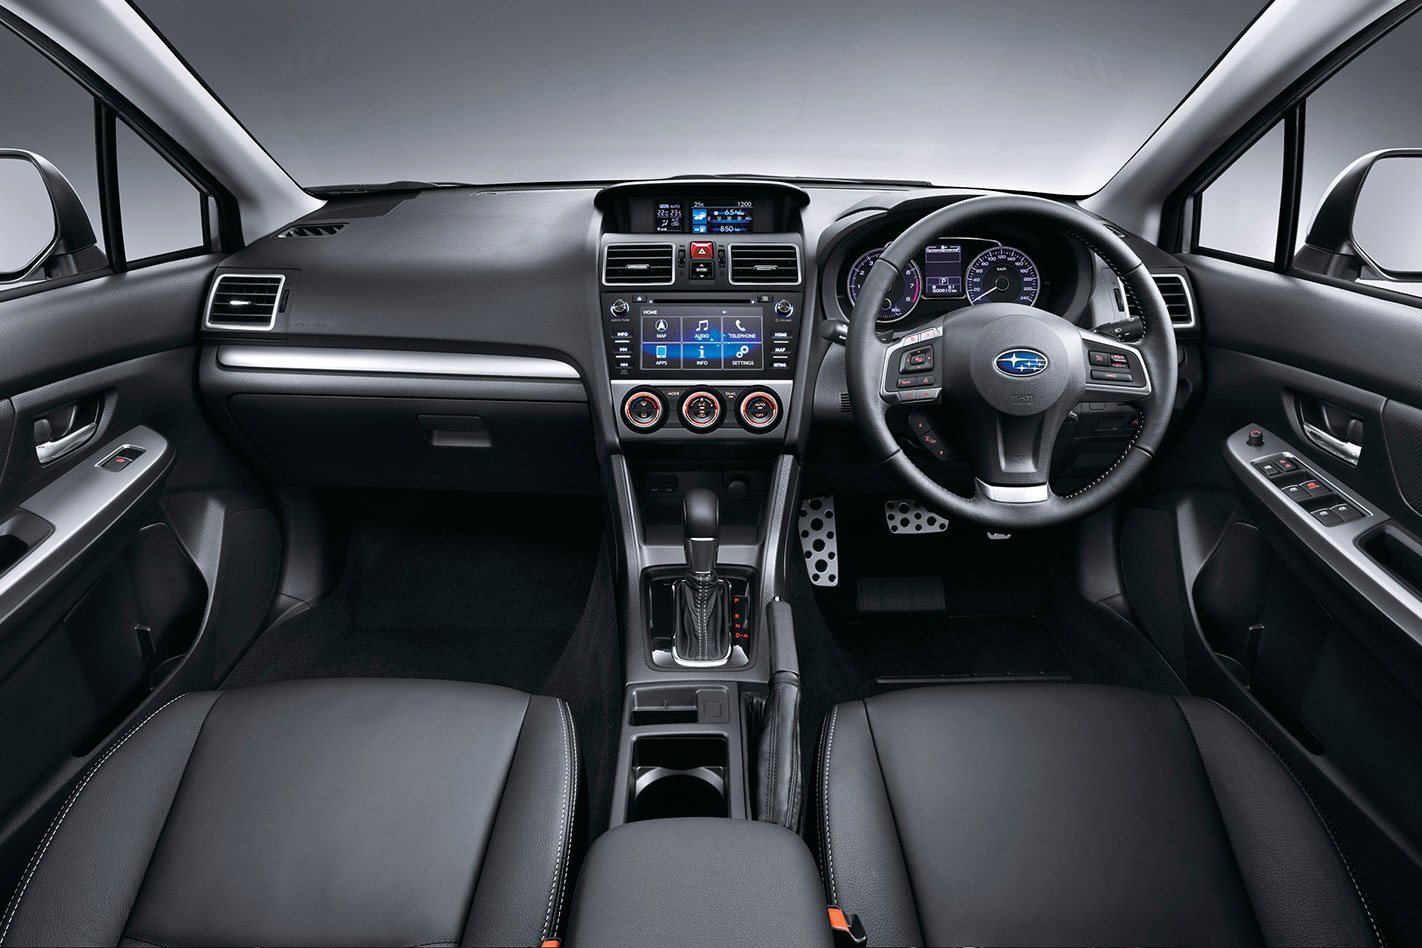 2016 Subaru XV Gains New Features in UK, Price Capped at £21,995 ...